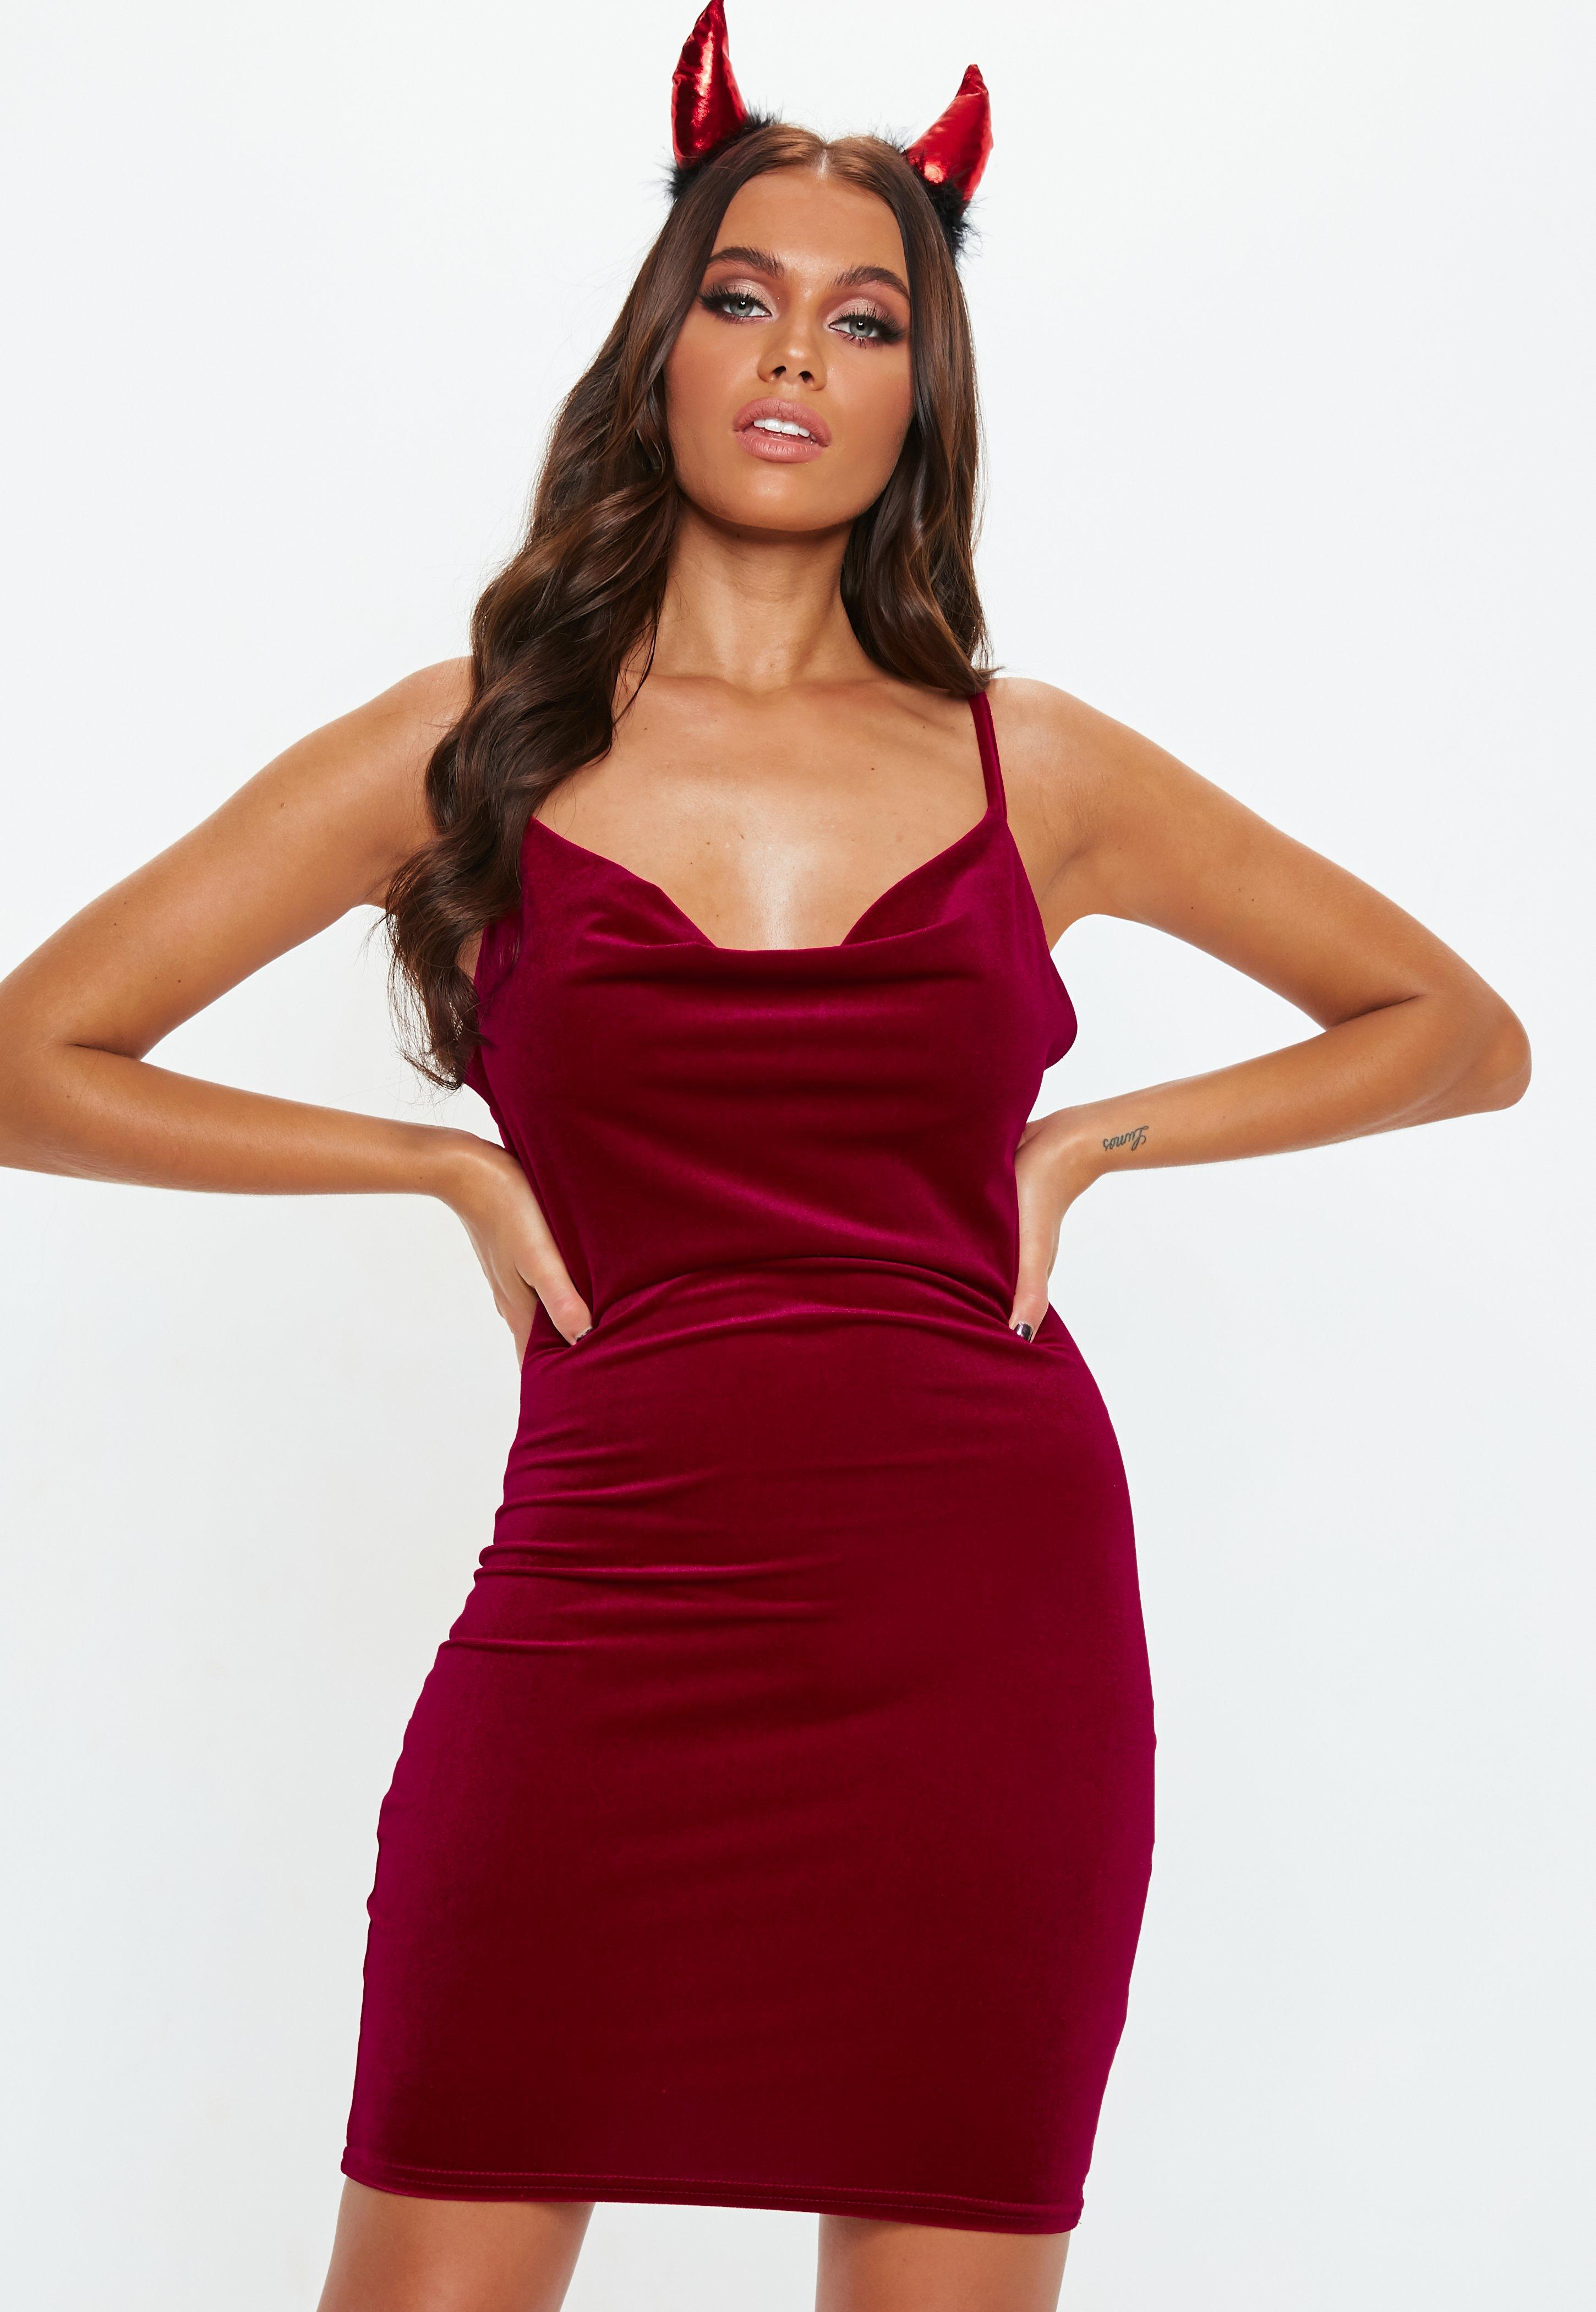 Lyst - Missguided Red Velvet Cowl Mini Dress in Red 85f8a2ac377d4